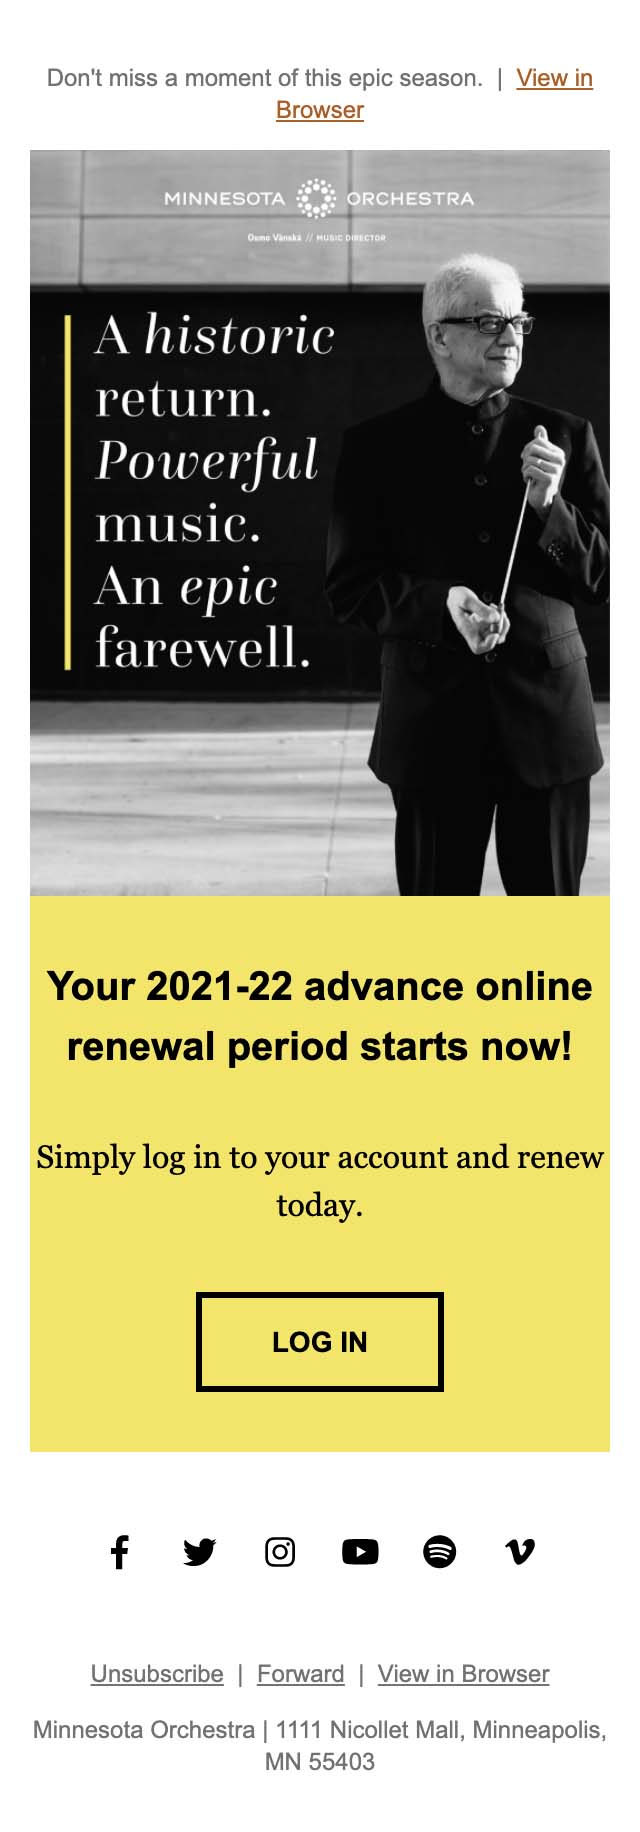 2021-22 Early Online Subscription Renewal Starts...NOW! - mobile view